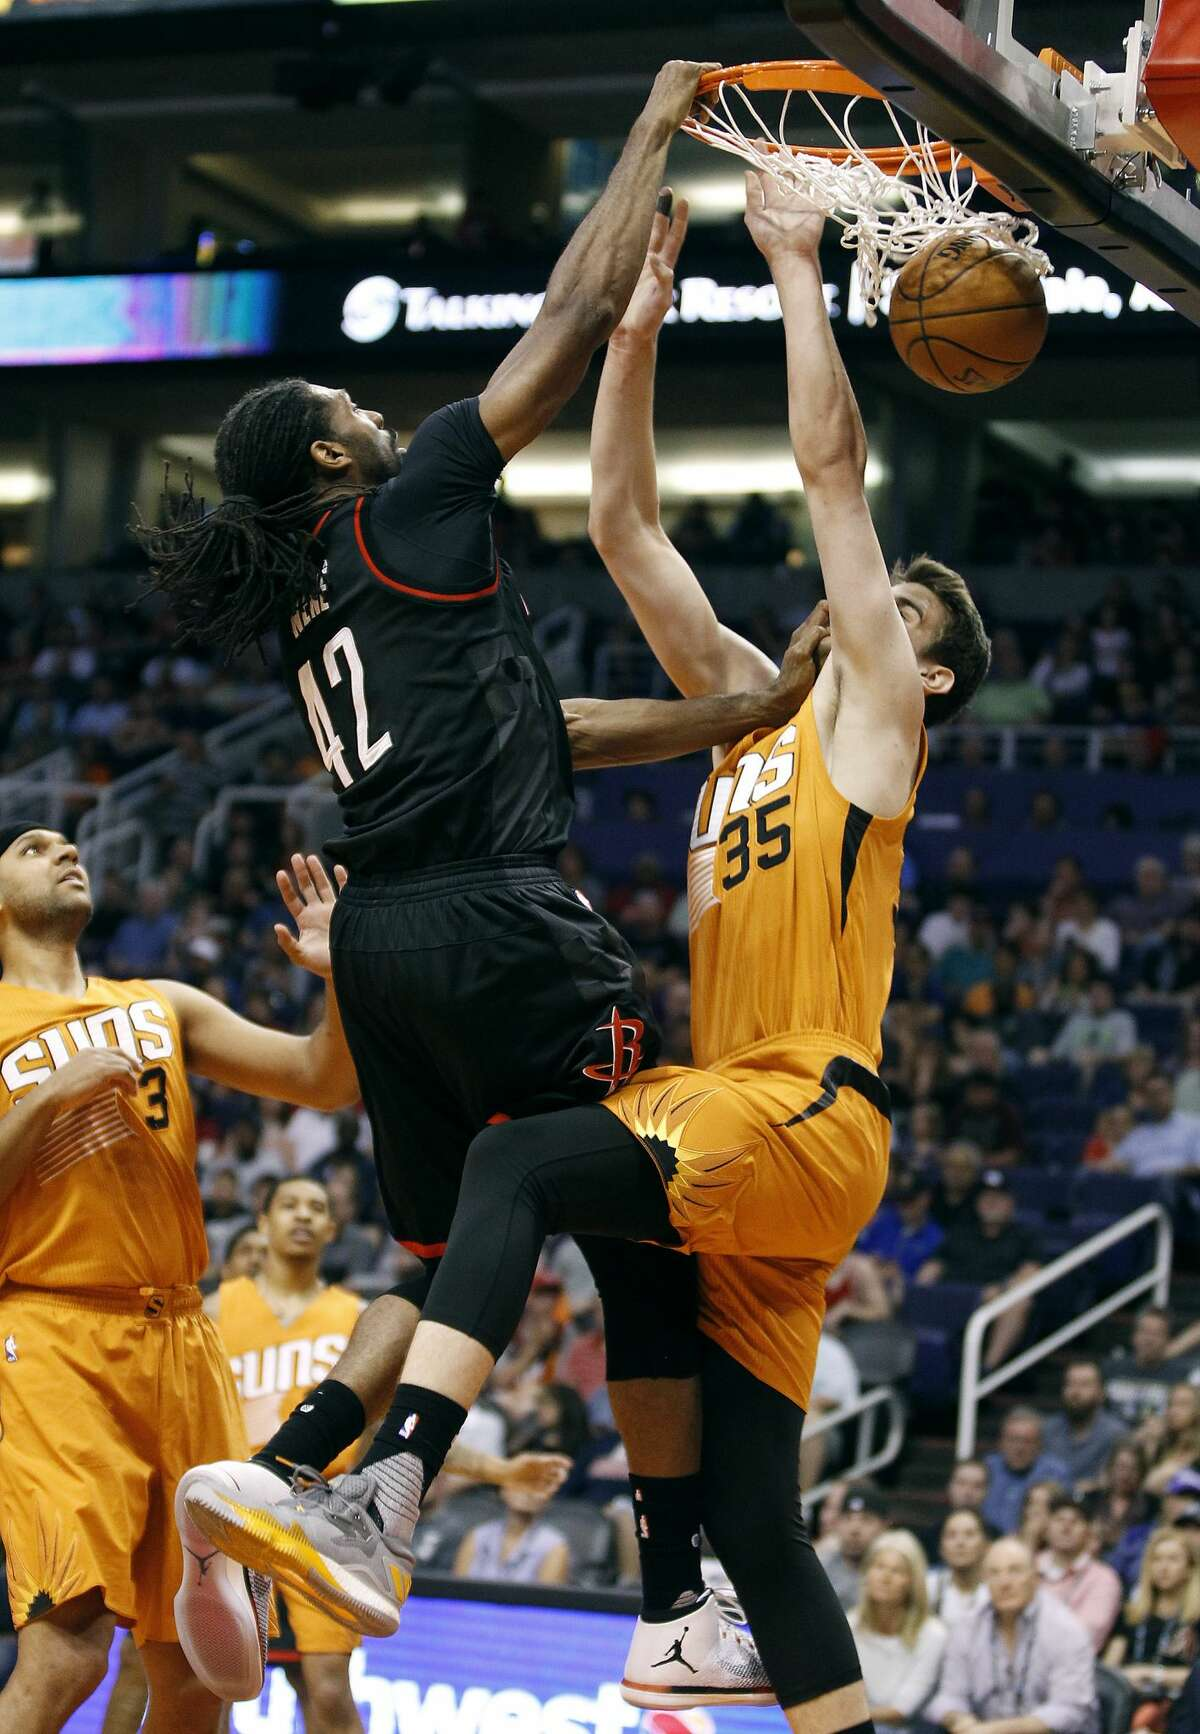 Houston Rockets' Nene (42) dunks over Phoenix Suns' Dragan Bender (35) and Jared Dodley (3) during the first half of an NBA basketball game, Sunday, April 2, 2017, in Phoenix. (AP Photo/Ralph Freso)